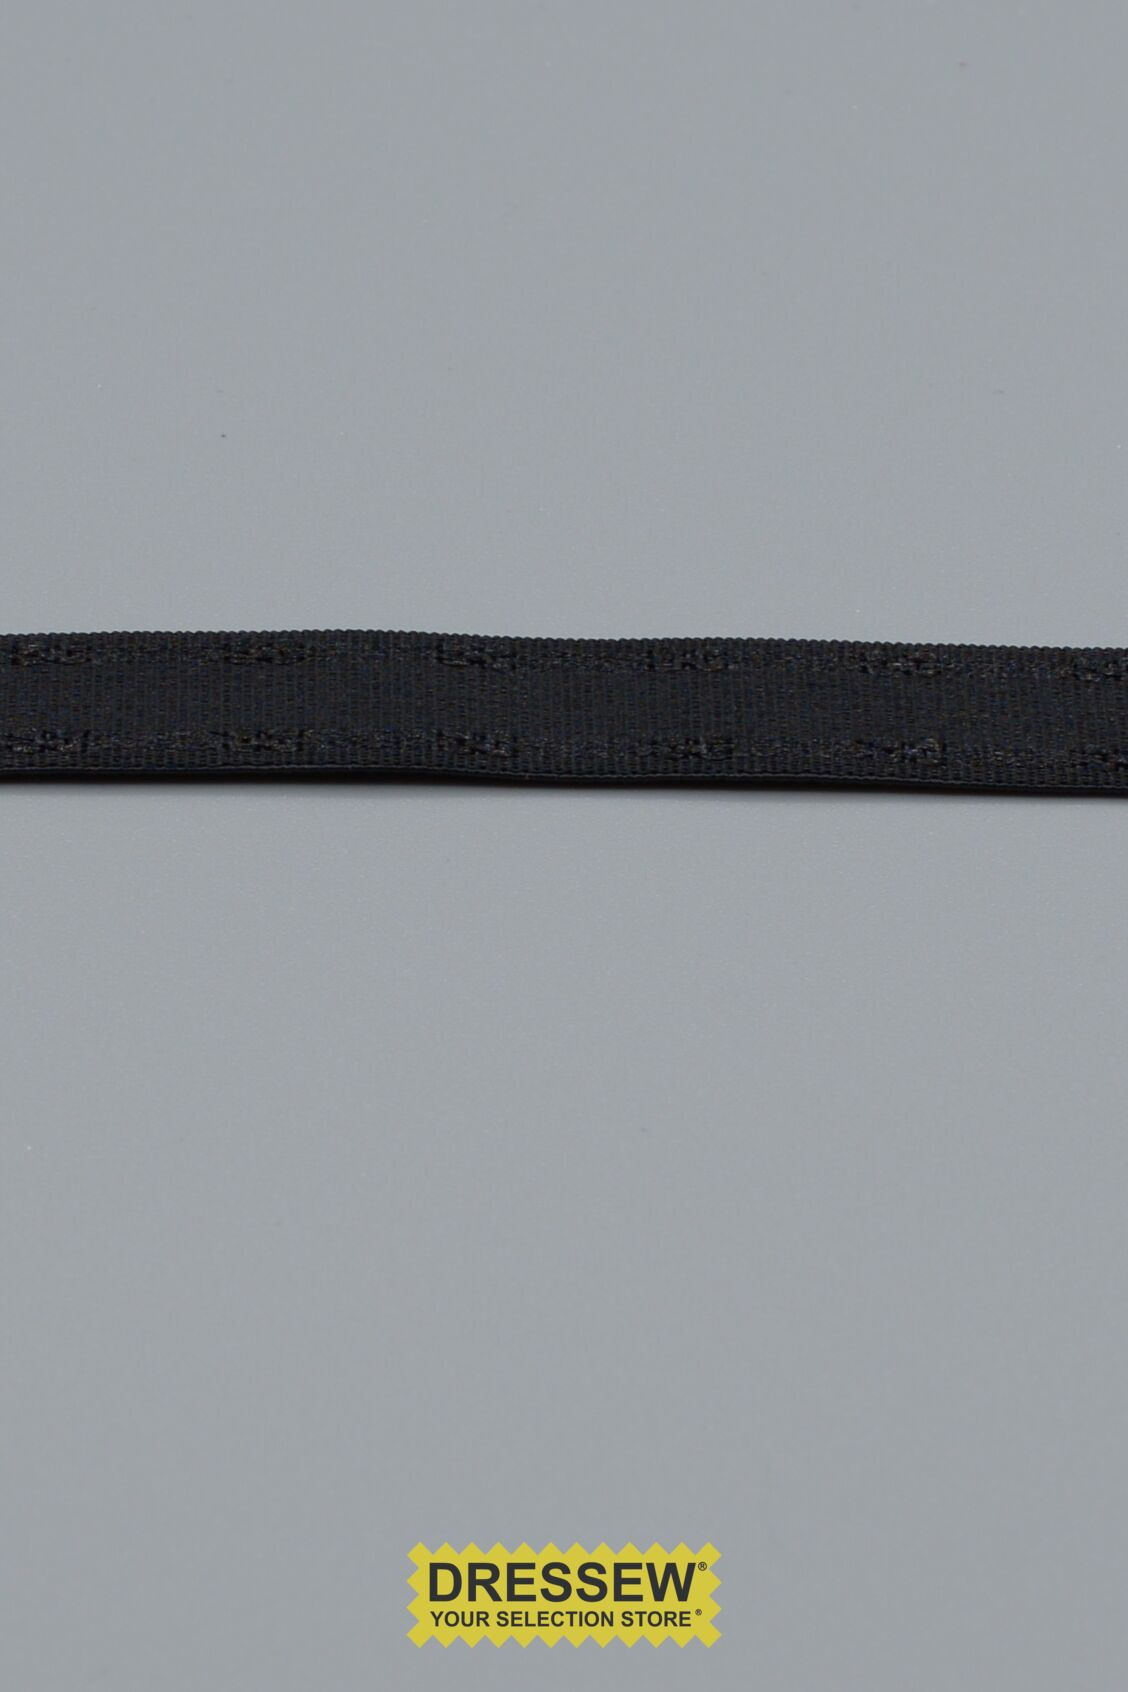 "Bra Strap Elastic 12mm (1/2"") Black"